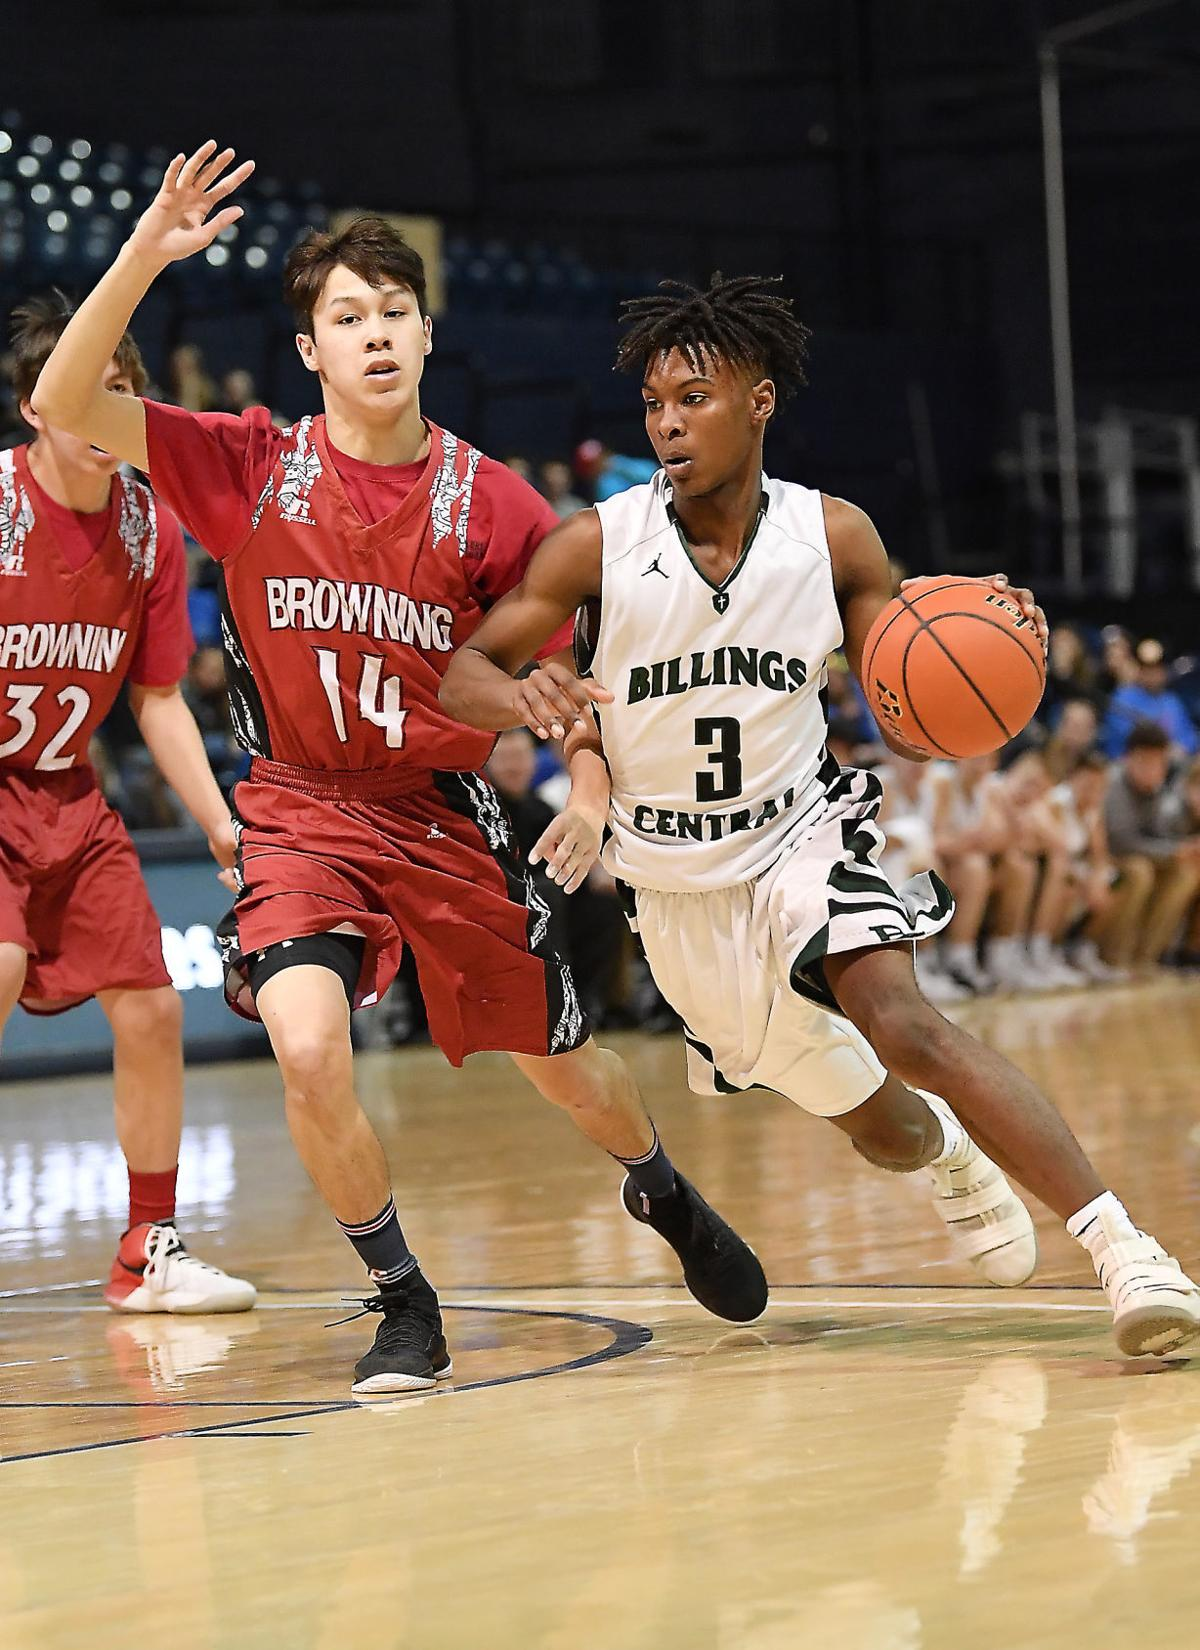 Billings Central vs. Browning Class A boys